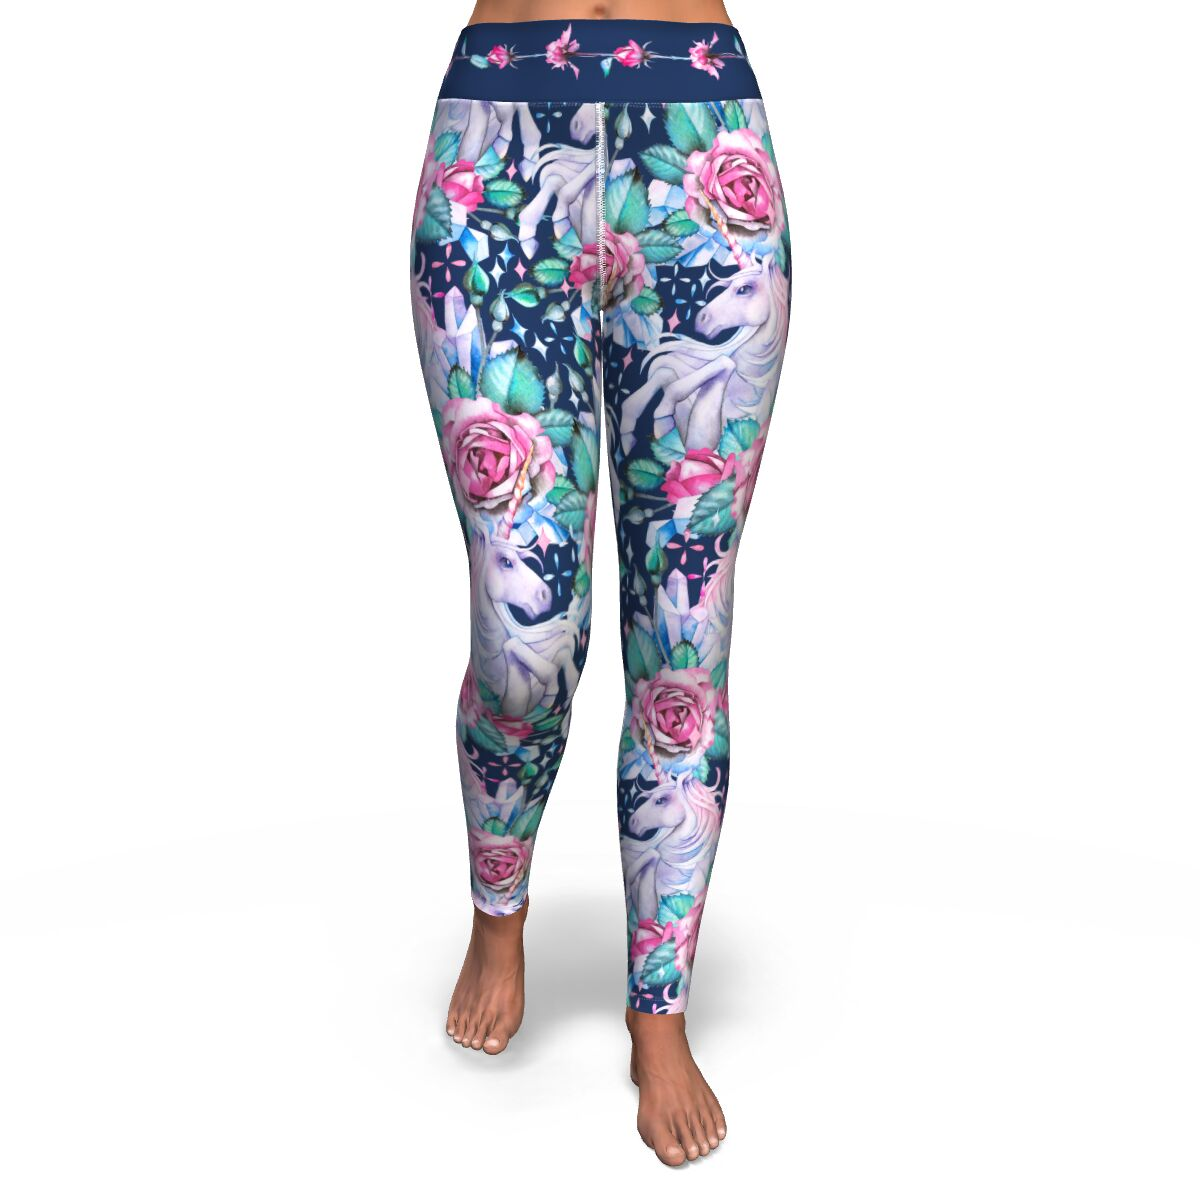 Unicorn Roses Women's Yoga Leggings